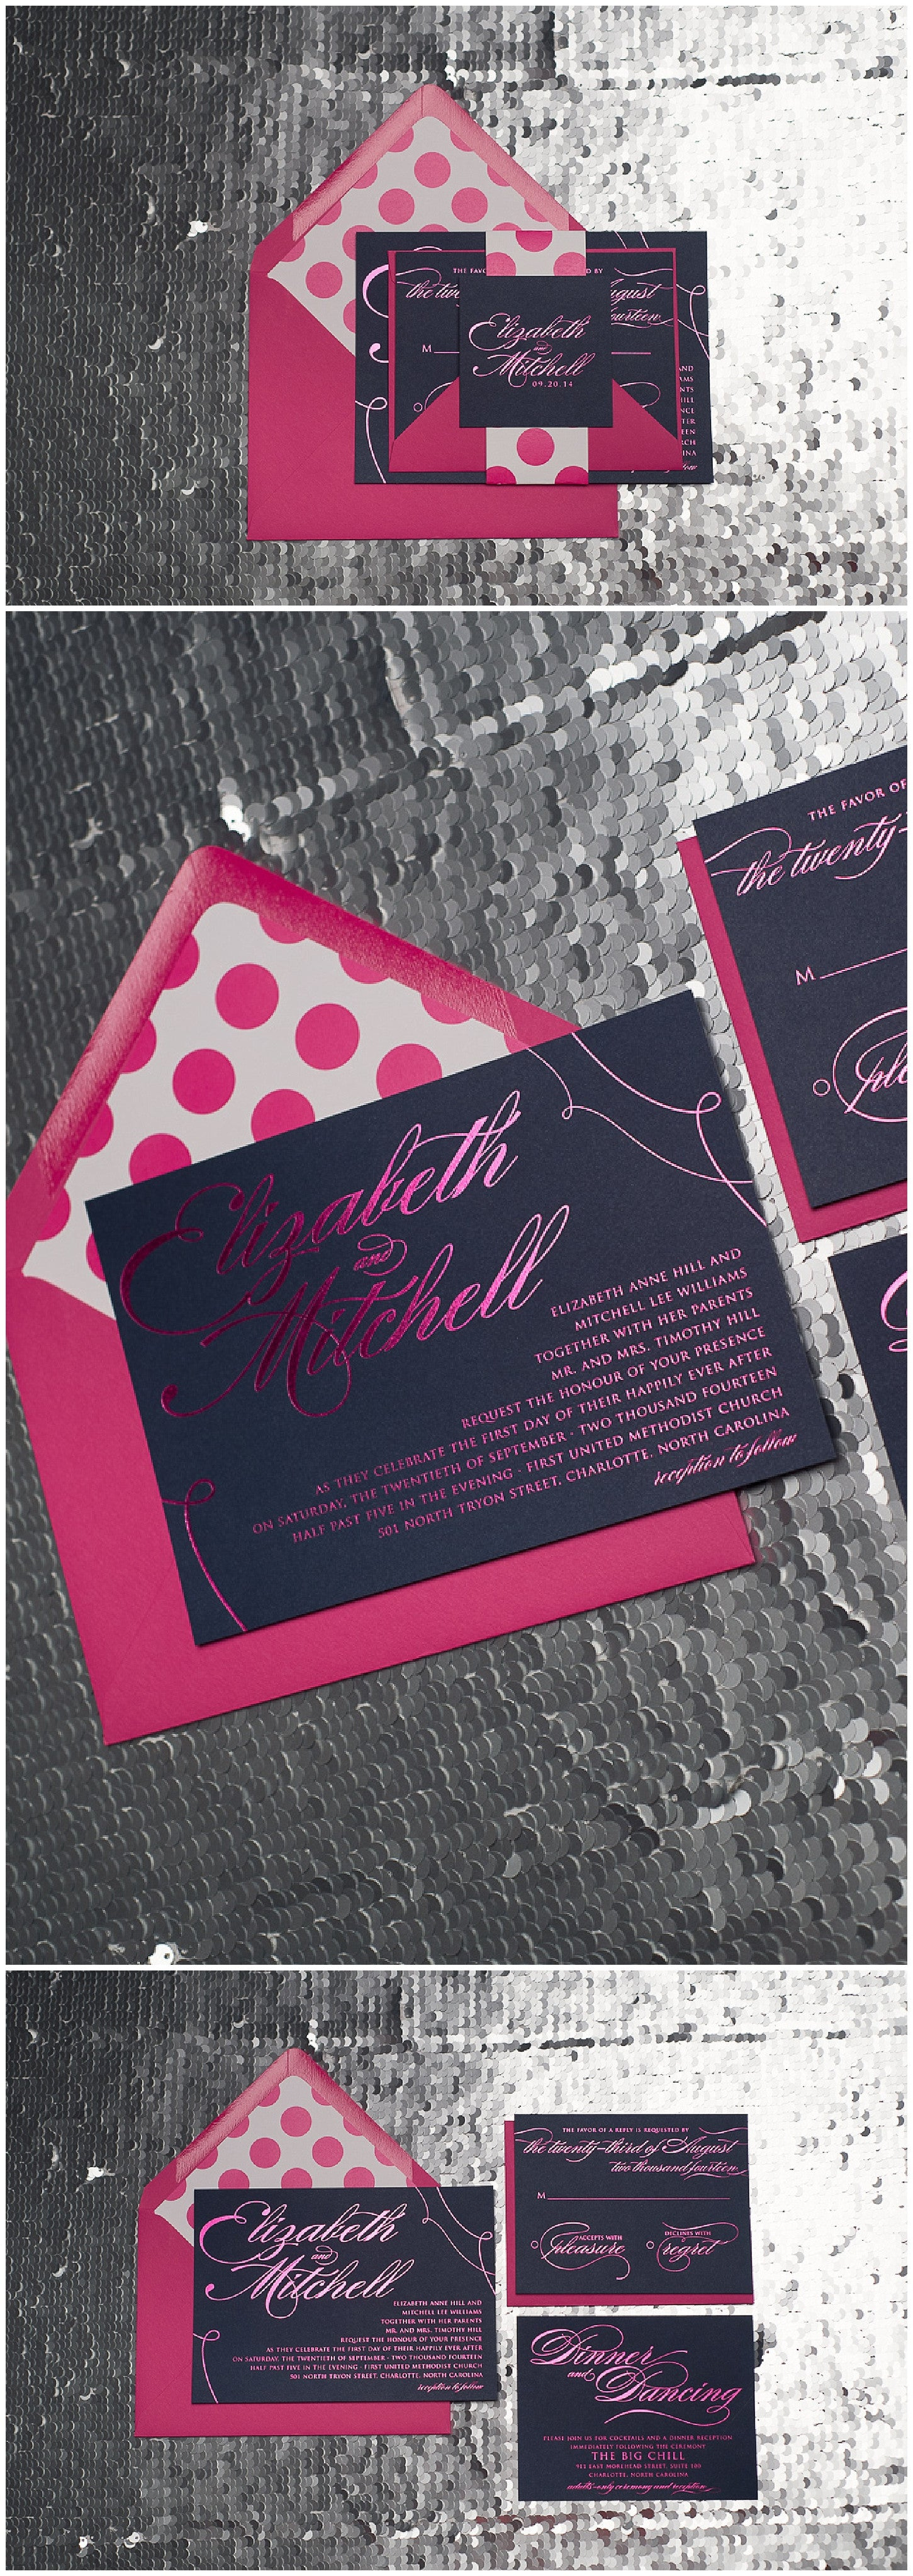 Wedding Invitations, Hot Pink Foil, Kate Spade Inspired, Hot Pink and Navy, Polka Dots, Lauren Suite, Just Invite Me,